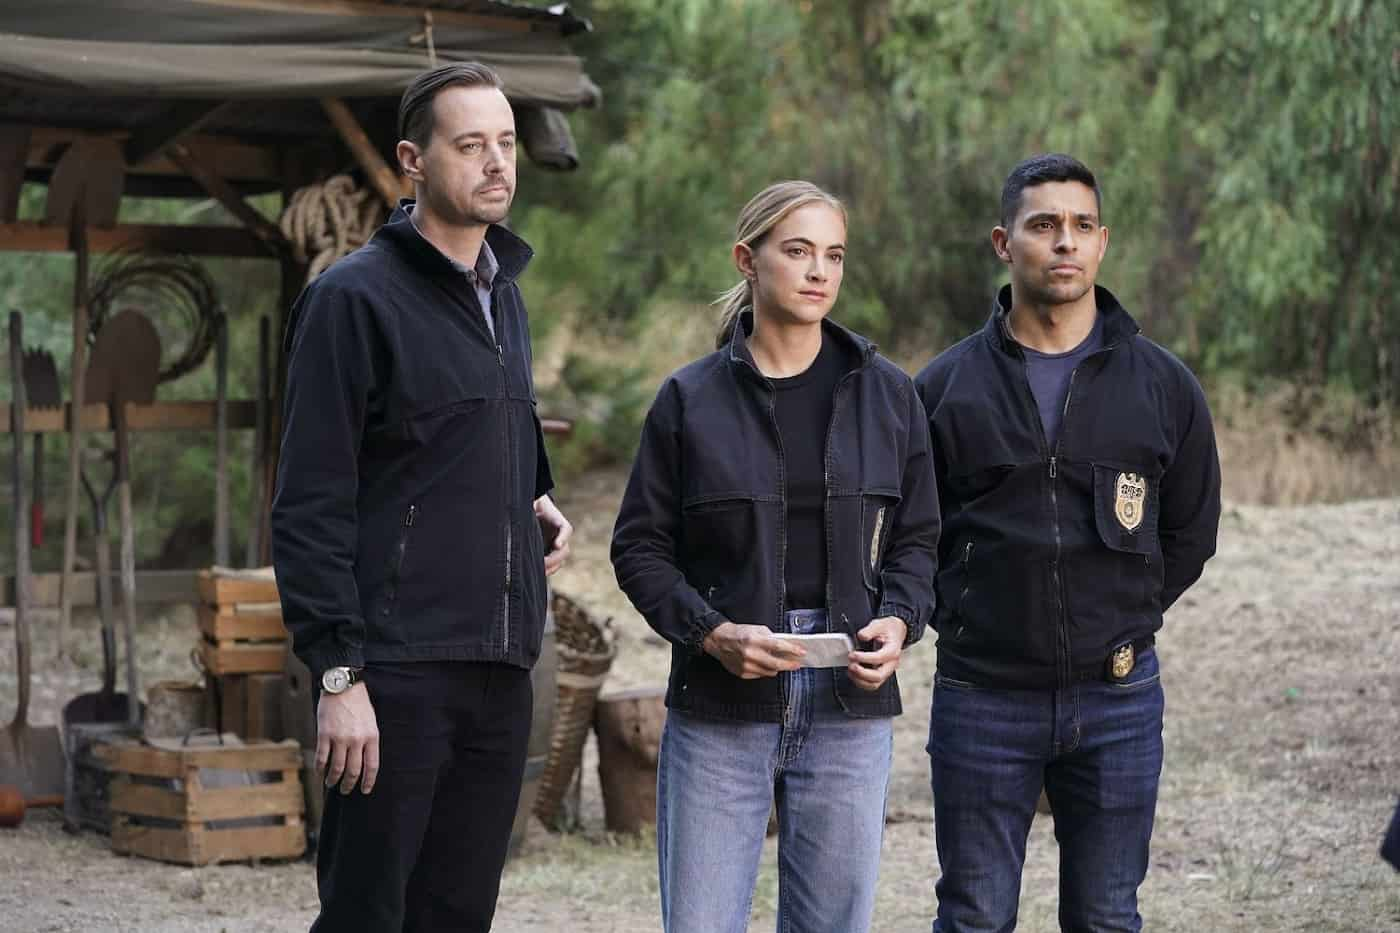 What Do You Think Is Going To Happen On NCIS Season 18 Episode 13?